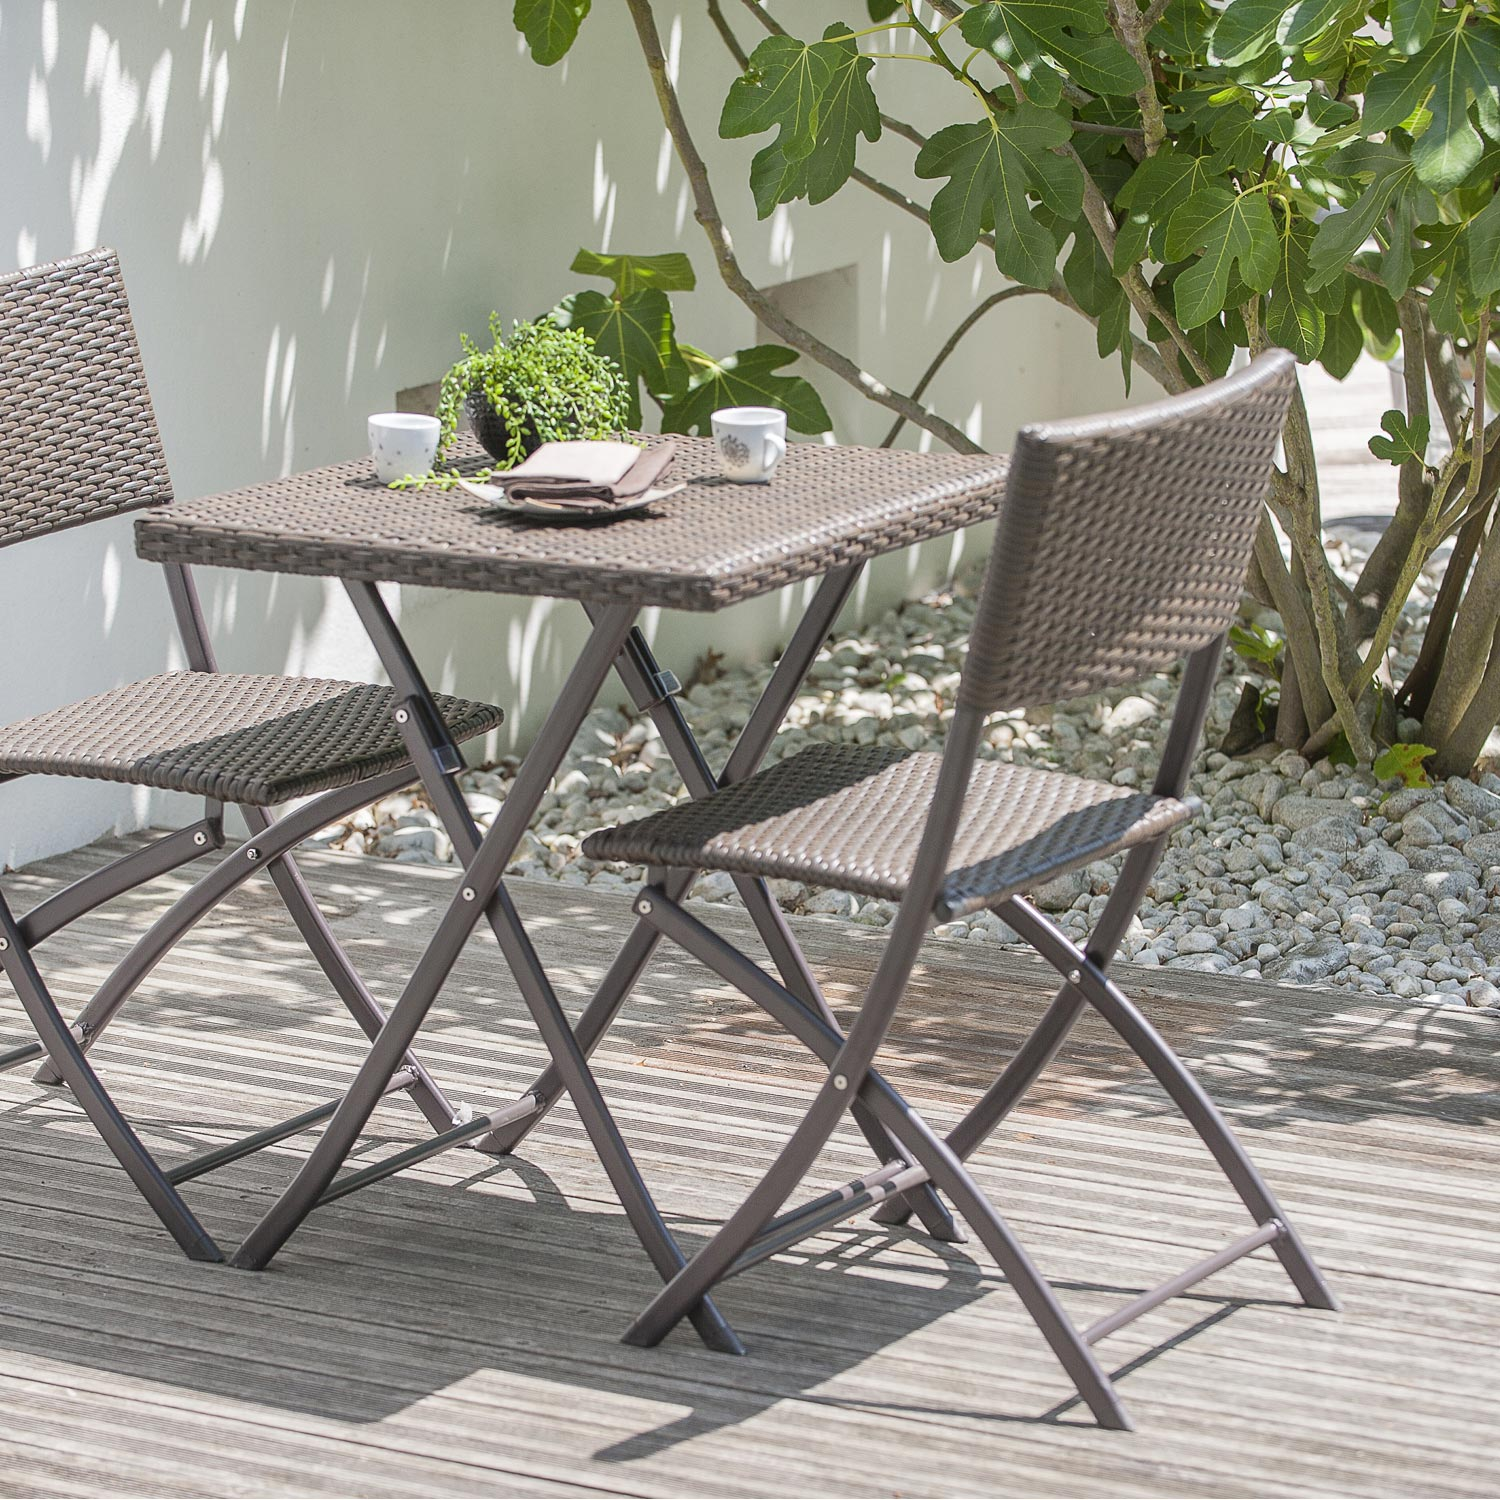 Salon de jardin r sine tress e marron 1 table gueridon 2 - Table rabattable leroy merlin ...